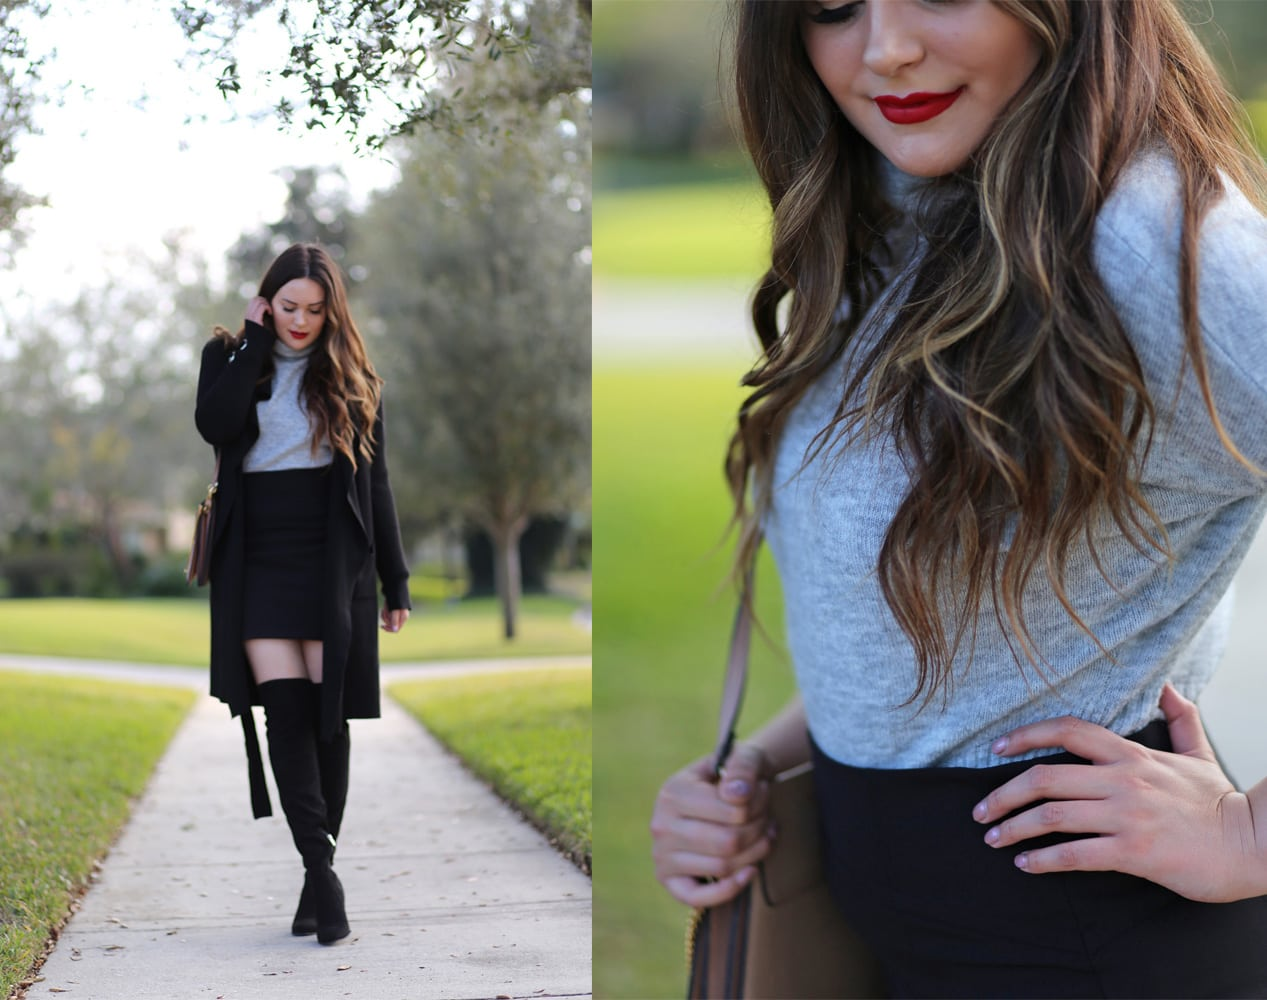 Dynamite holiday outfit idea | beauty blogger Mash Elle | cold or warm weather outfit | otk boots | coats | skirt black outfit | winter fashion